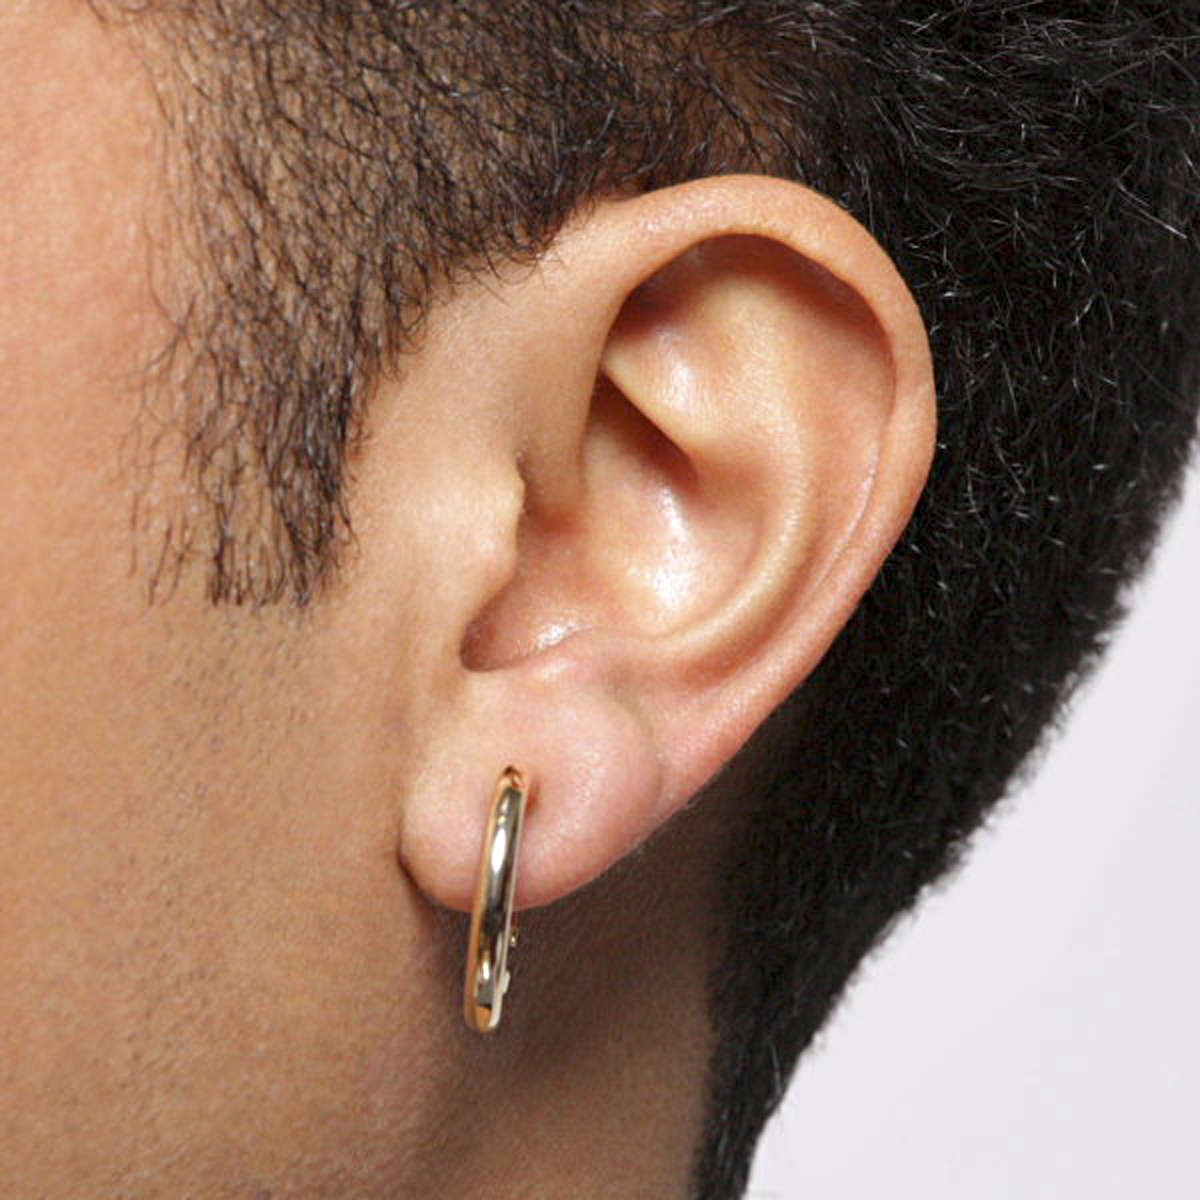 right earring gay